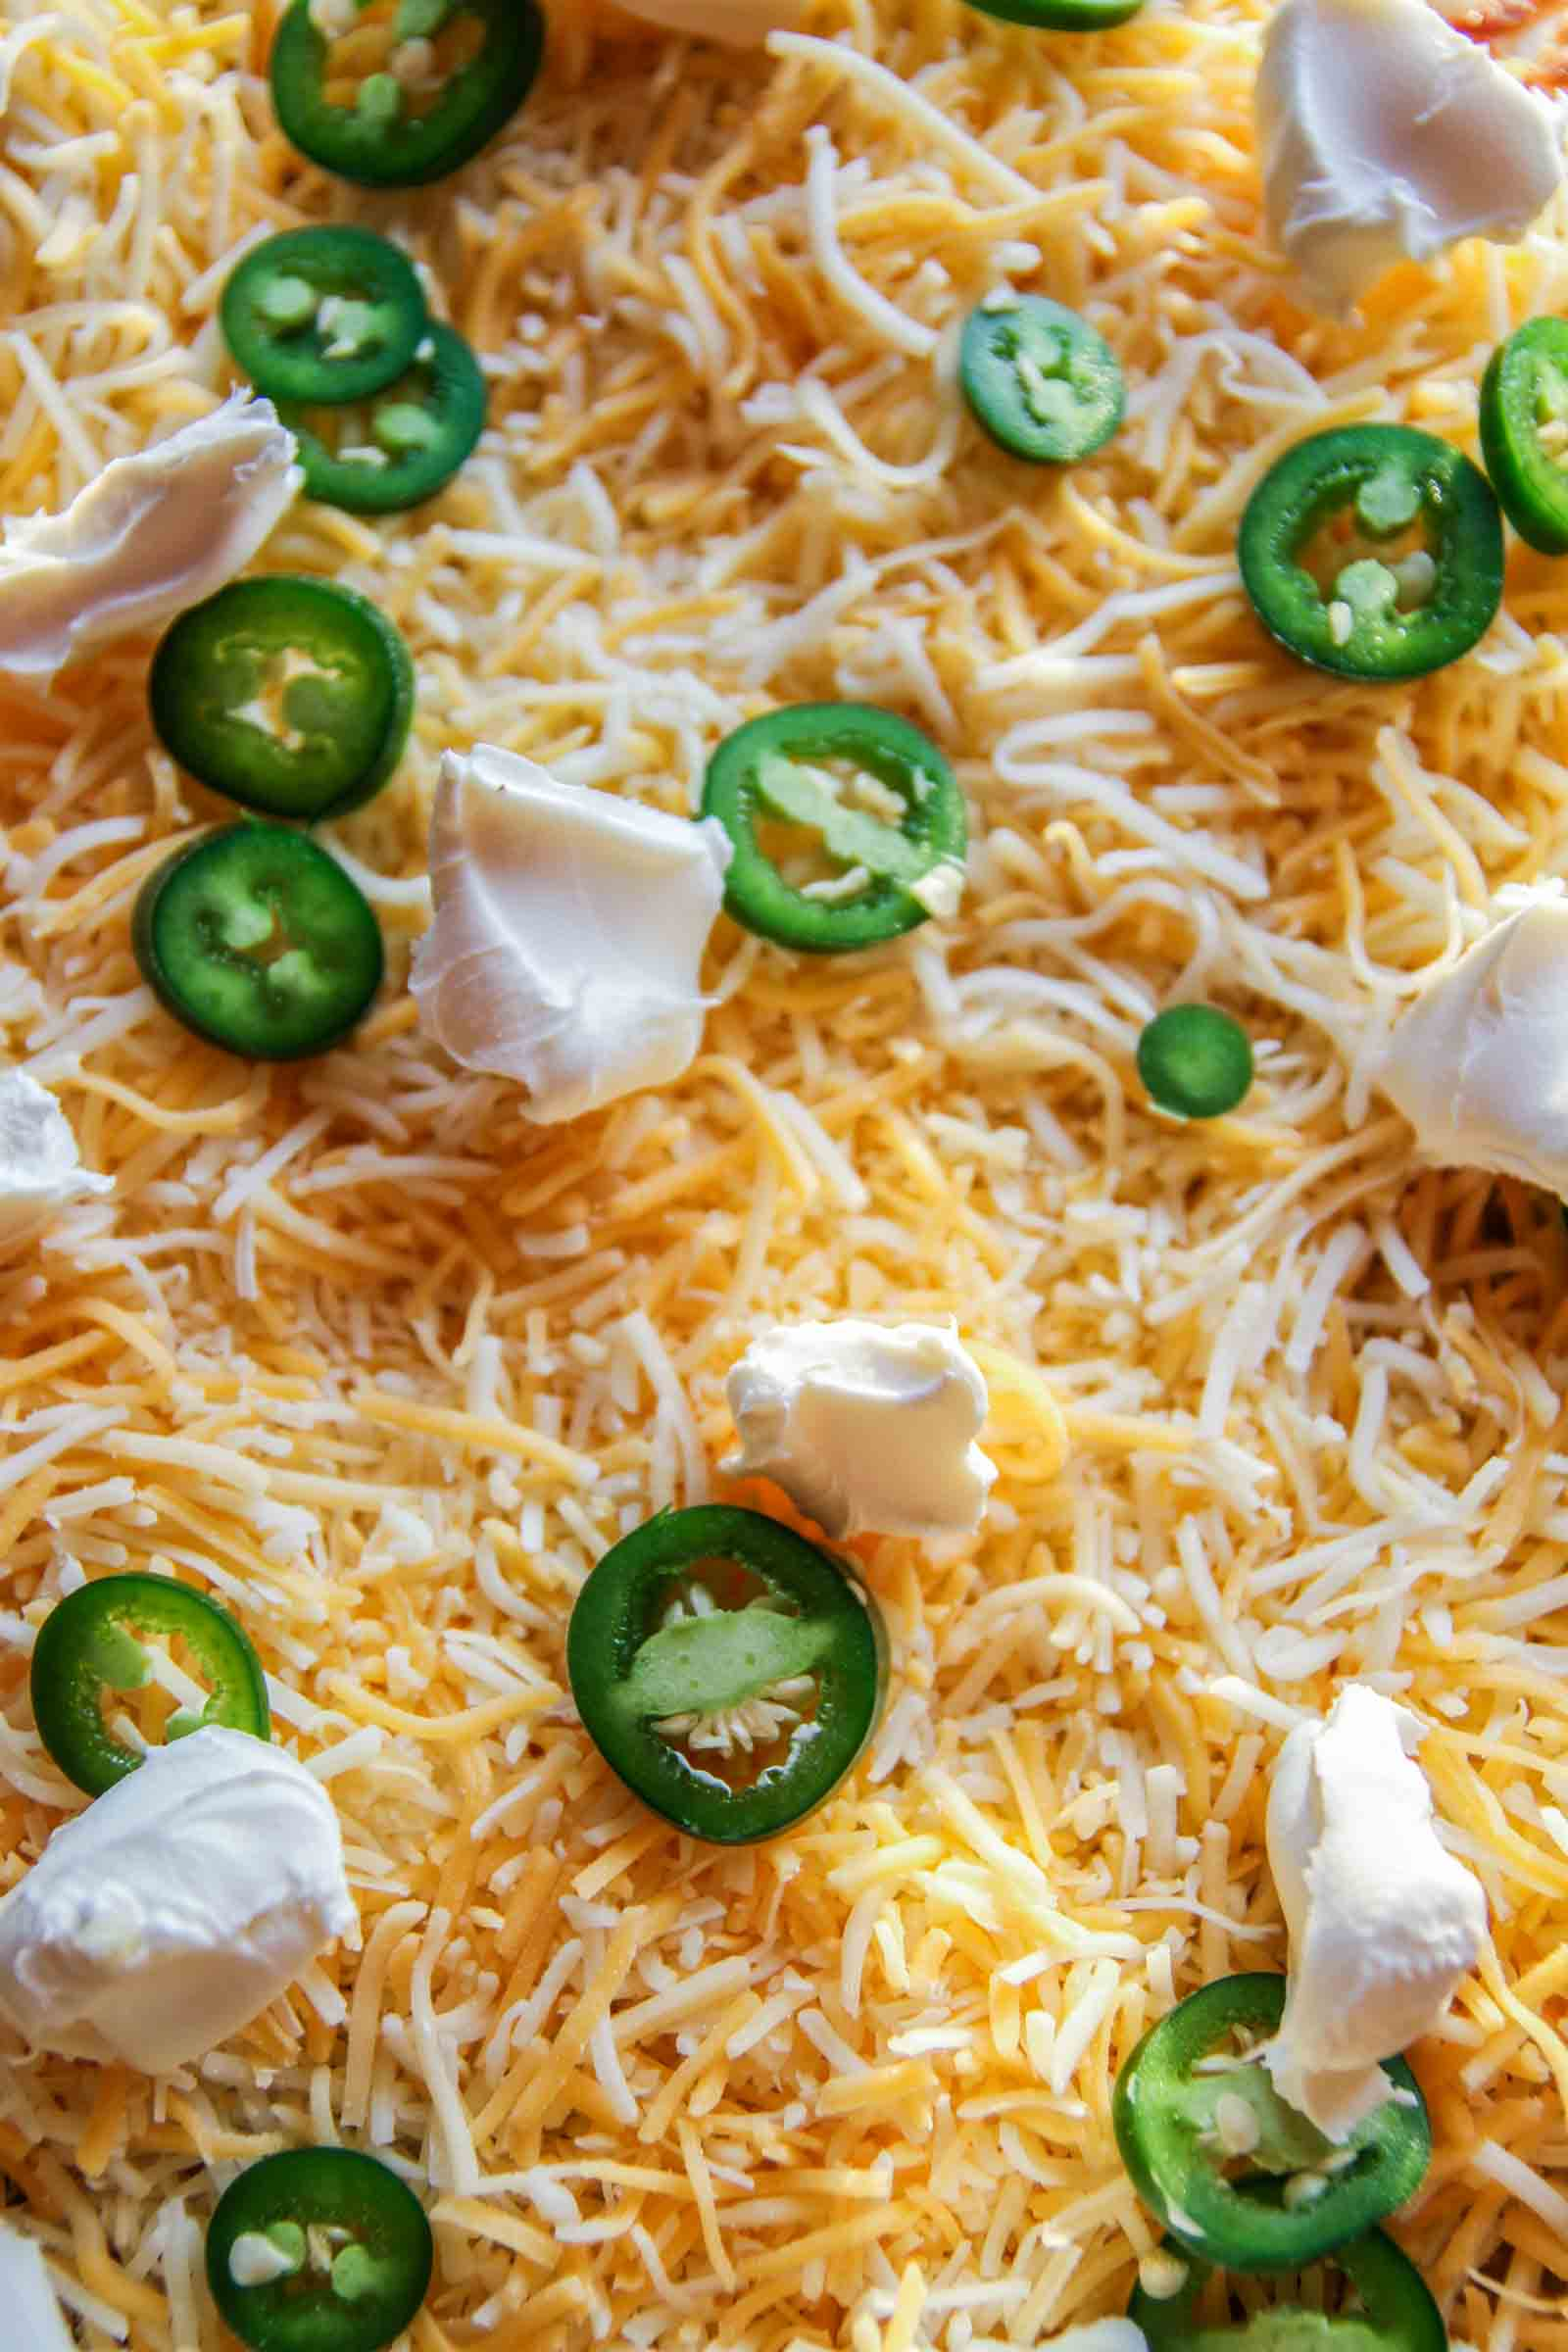 Jalapeno enchilada cream cheese pizza. Meatless Monday pizza recipe from @sweetphi